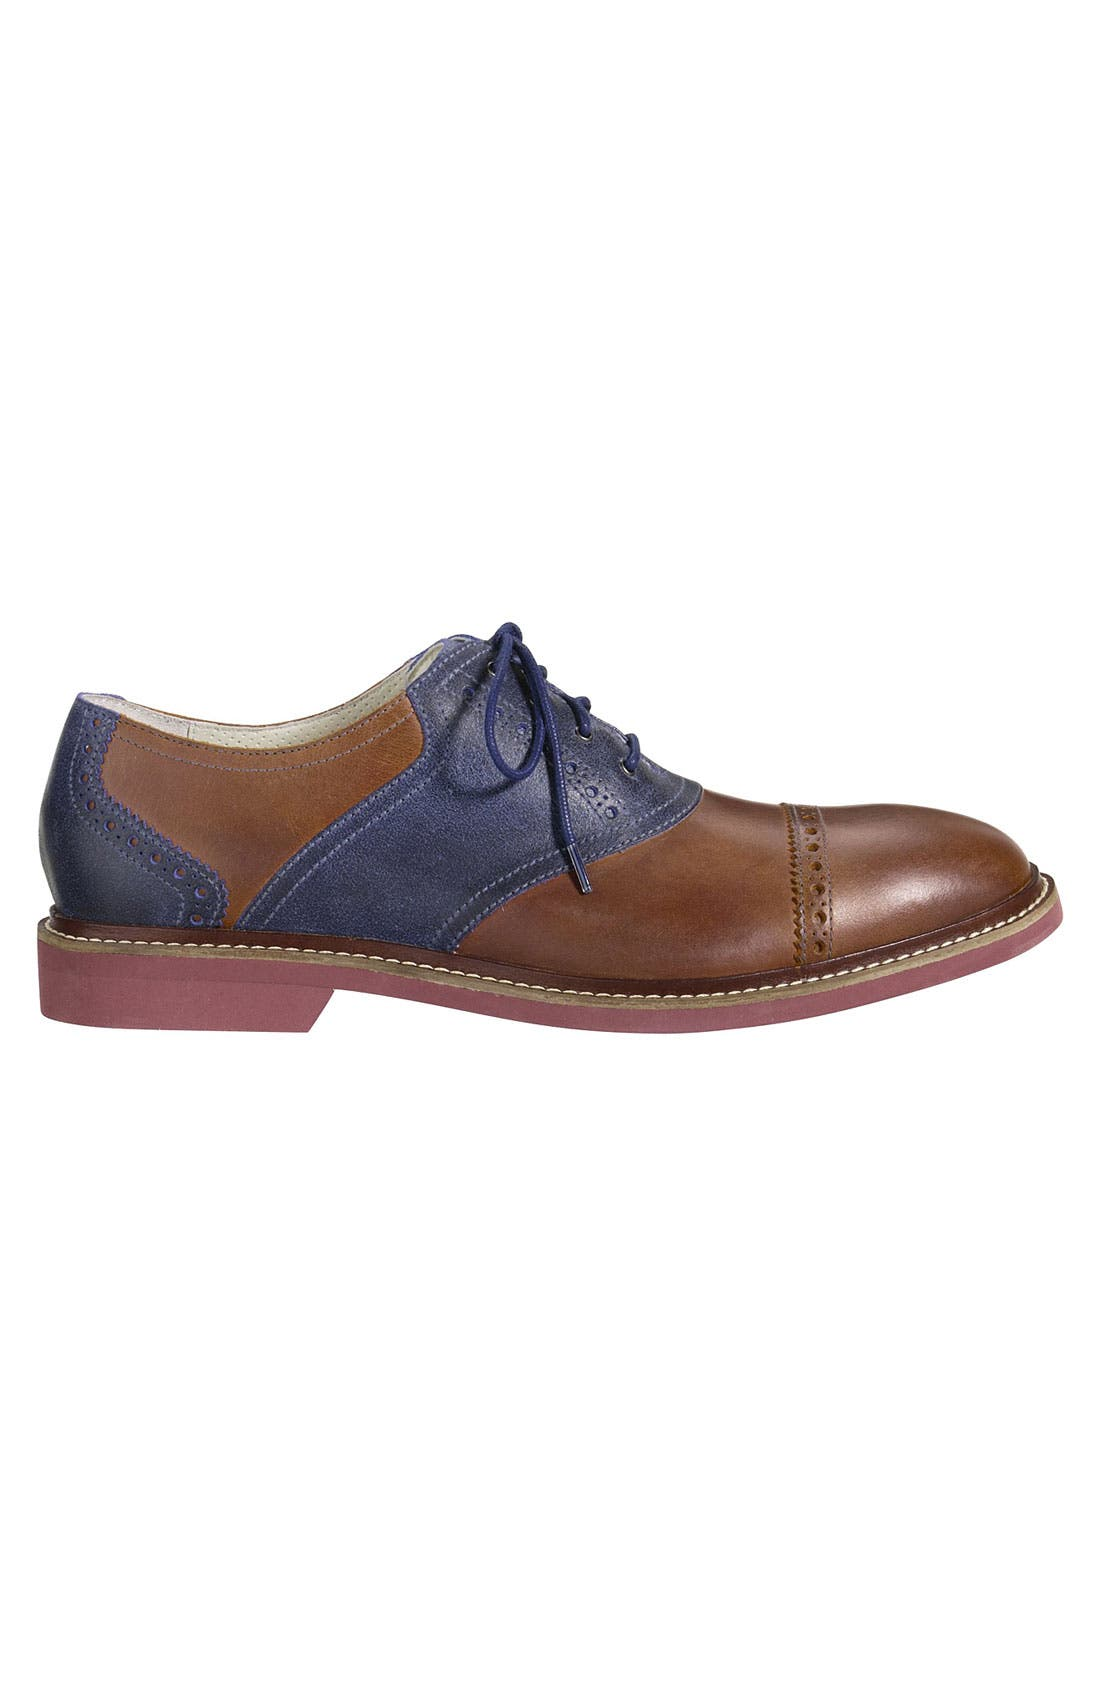 Alternate Image 3  - Cole Haan 'Air Franklin' Saddle Oxford